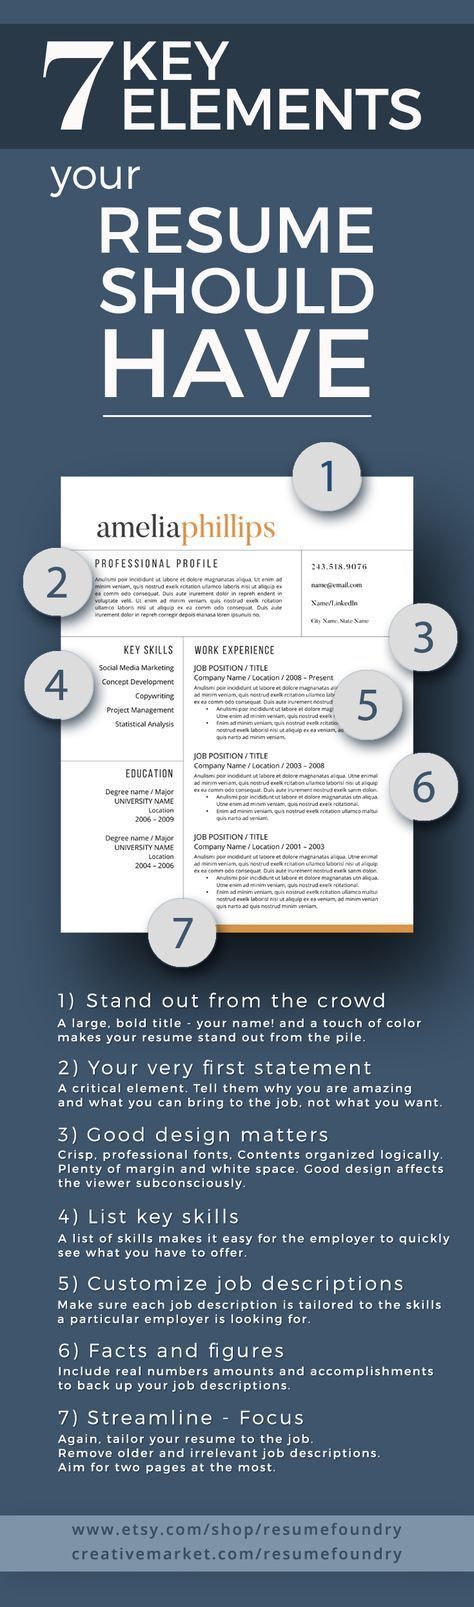 7 Key Elements your resume should have - does yours? Me - elements of a good resume